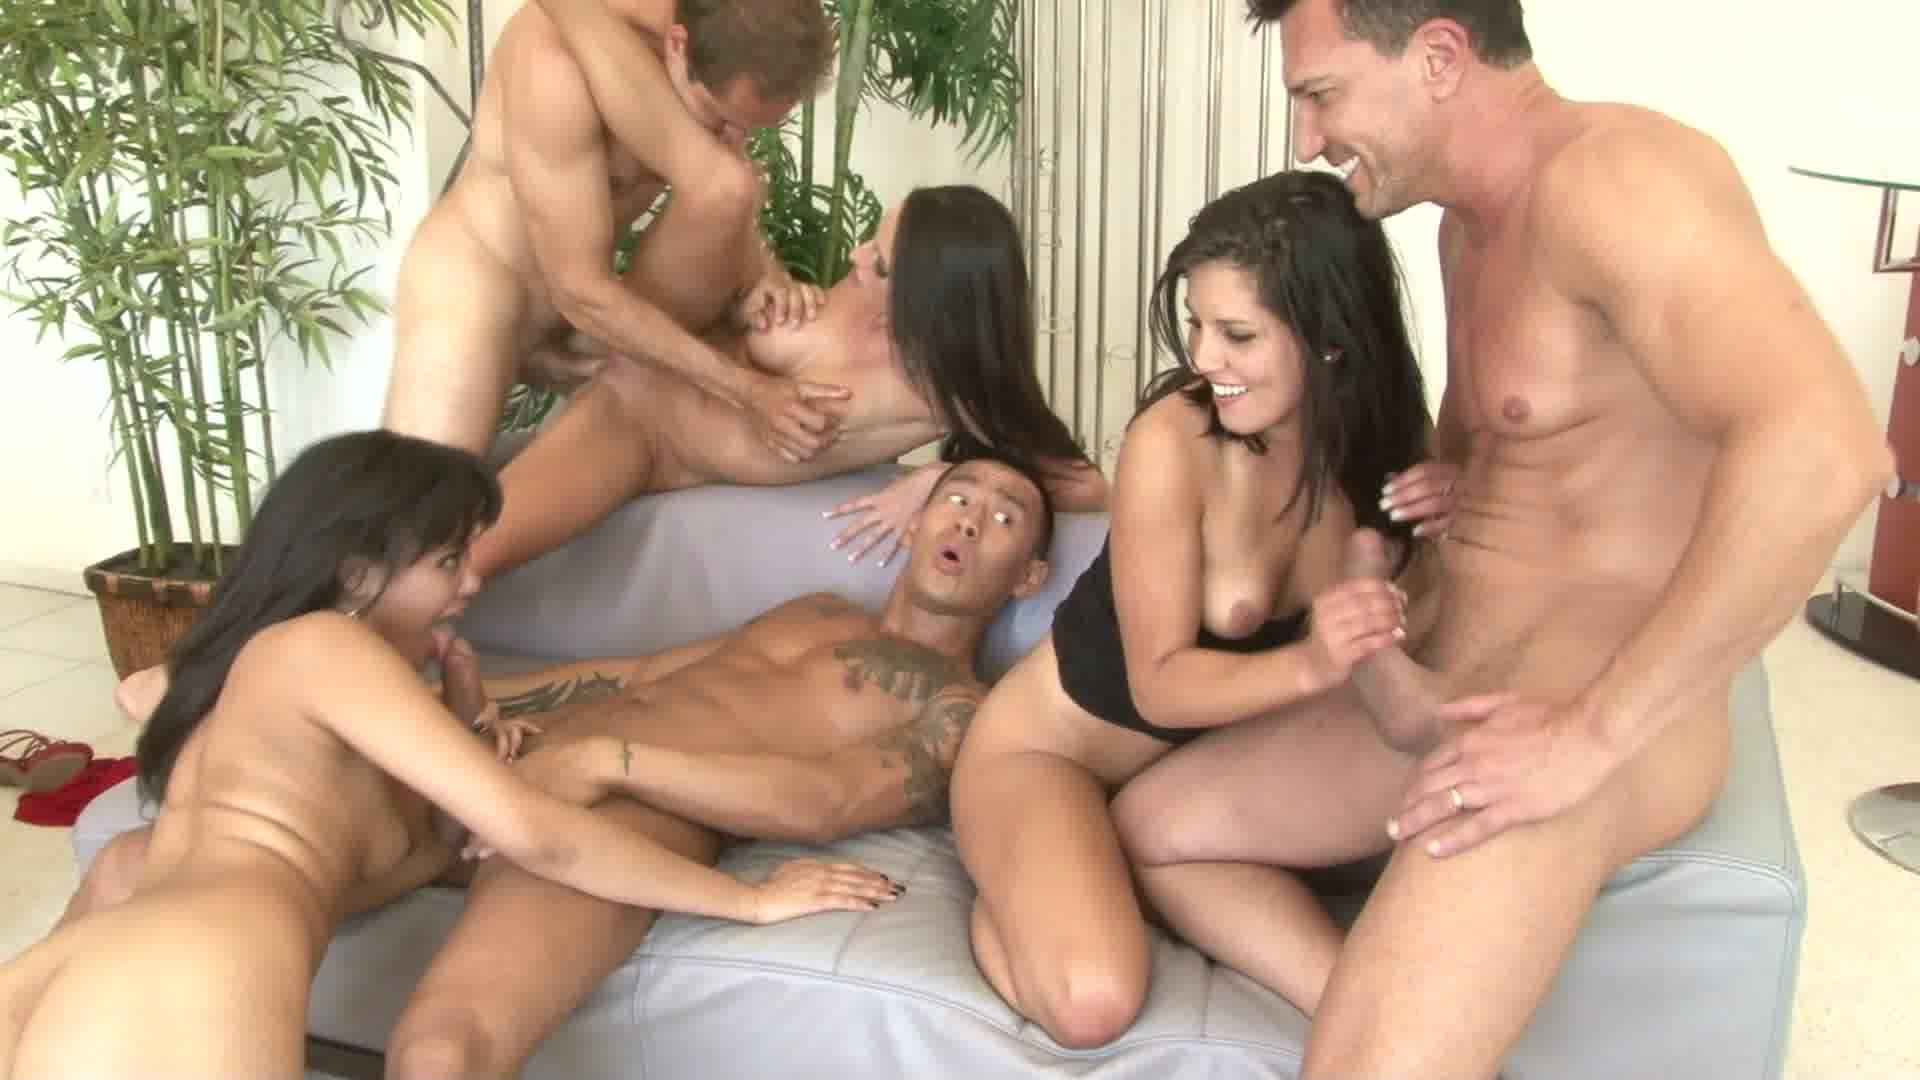 Neighborhood Swingers 5 xvideos150227